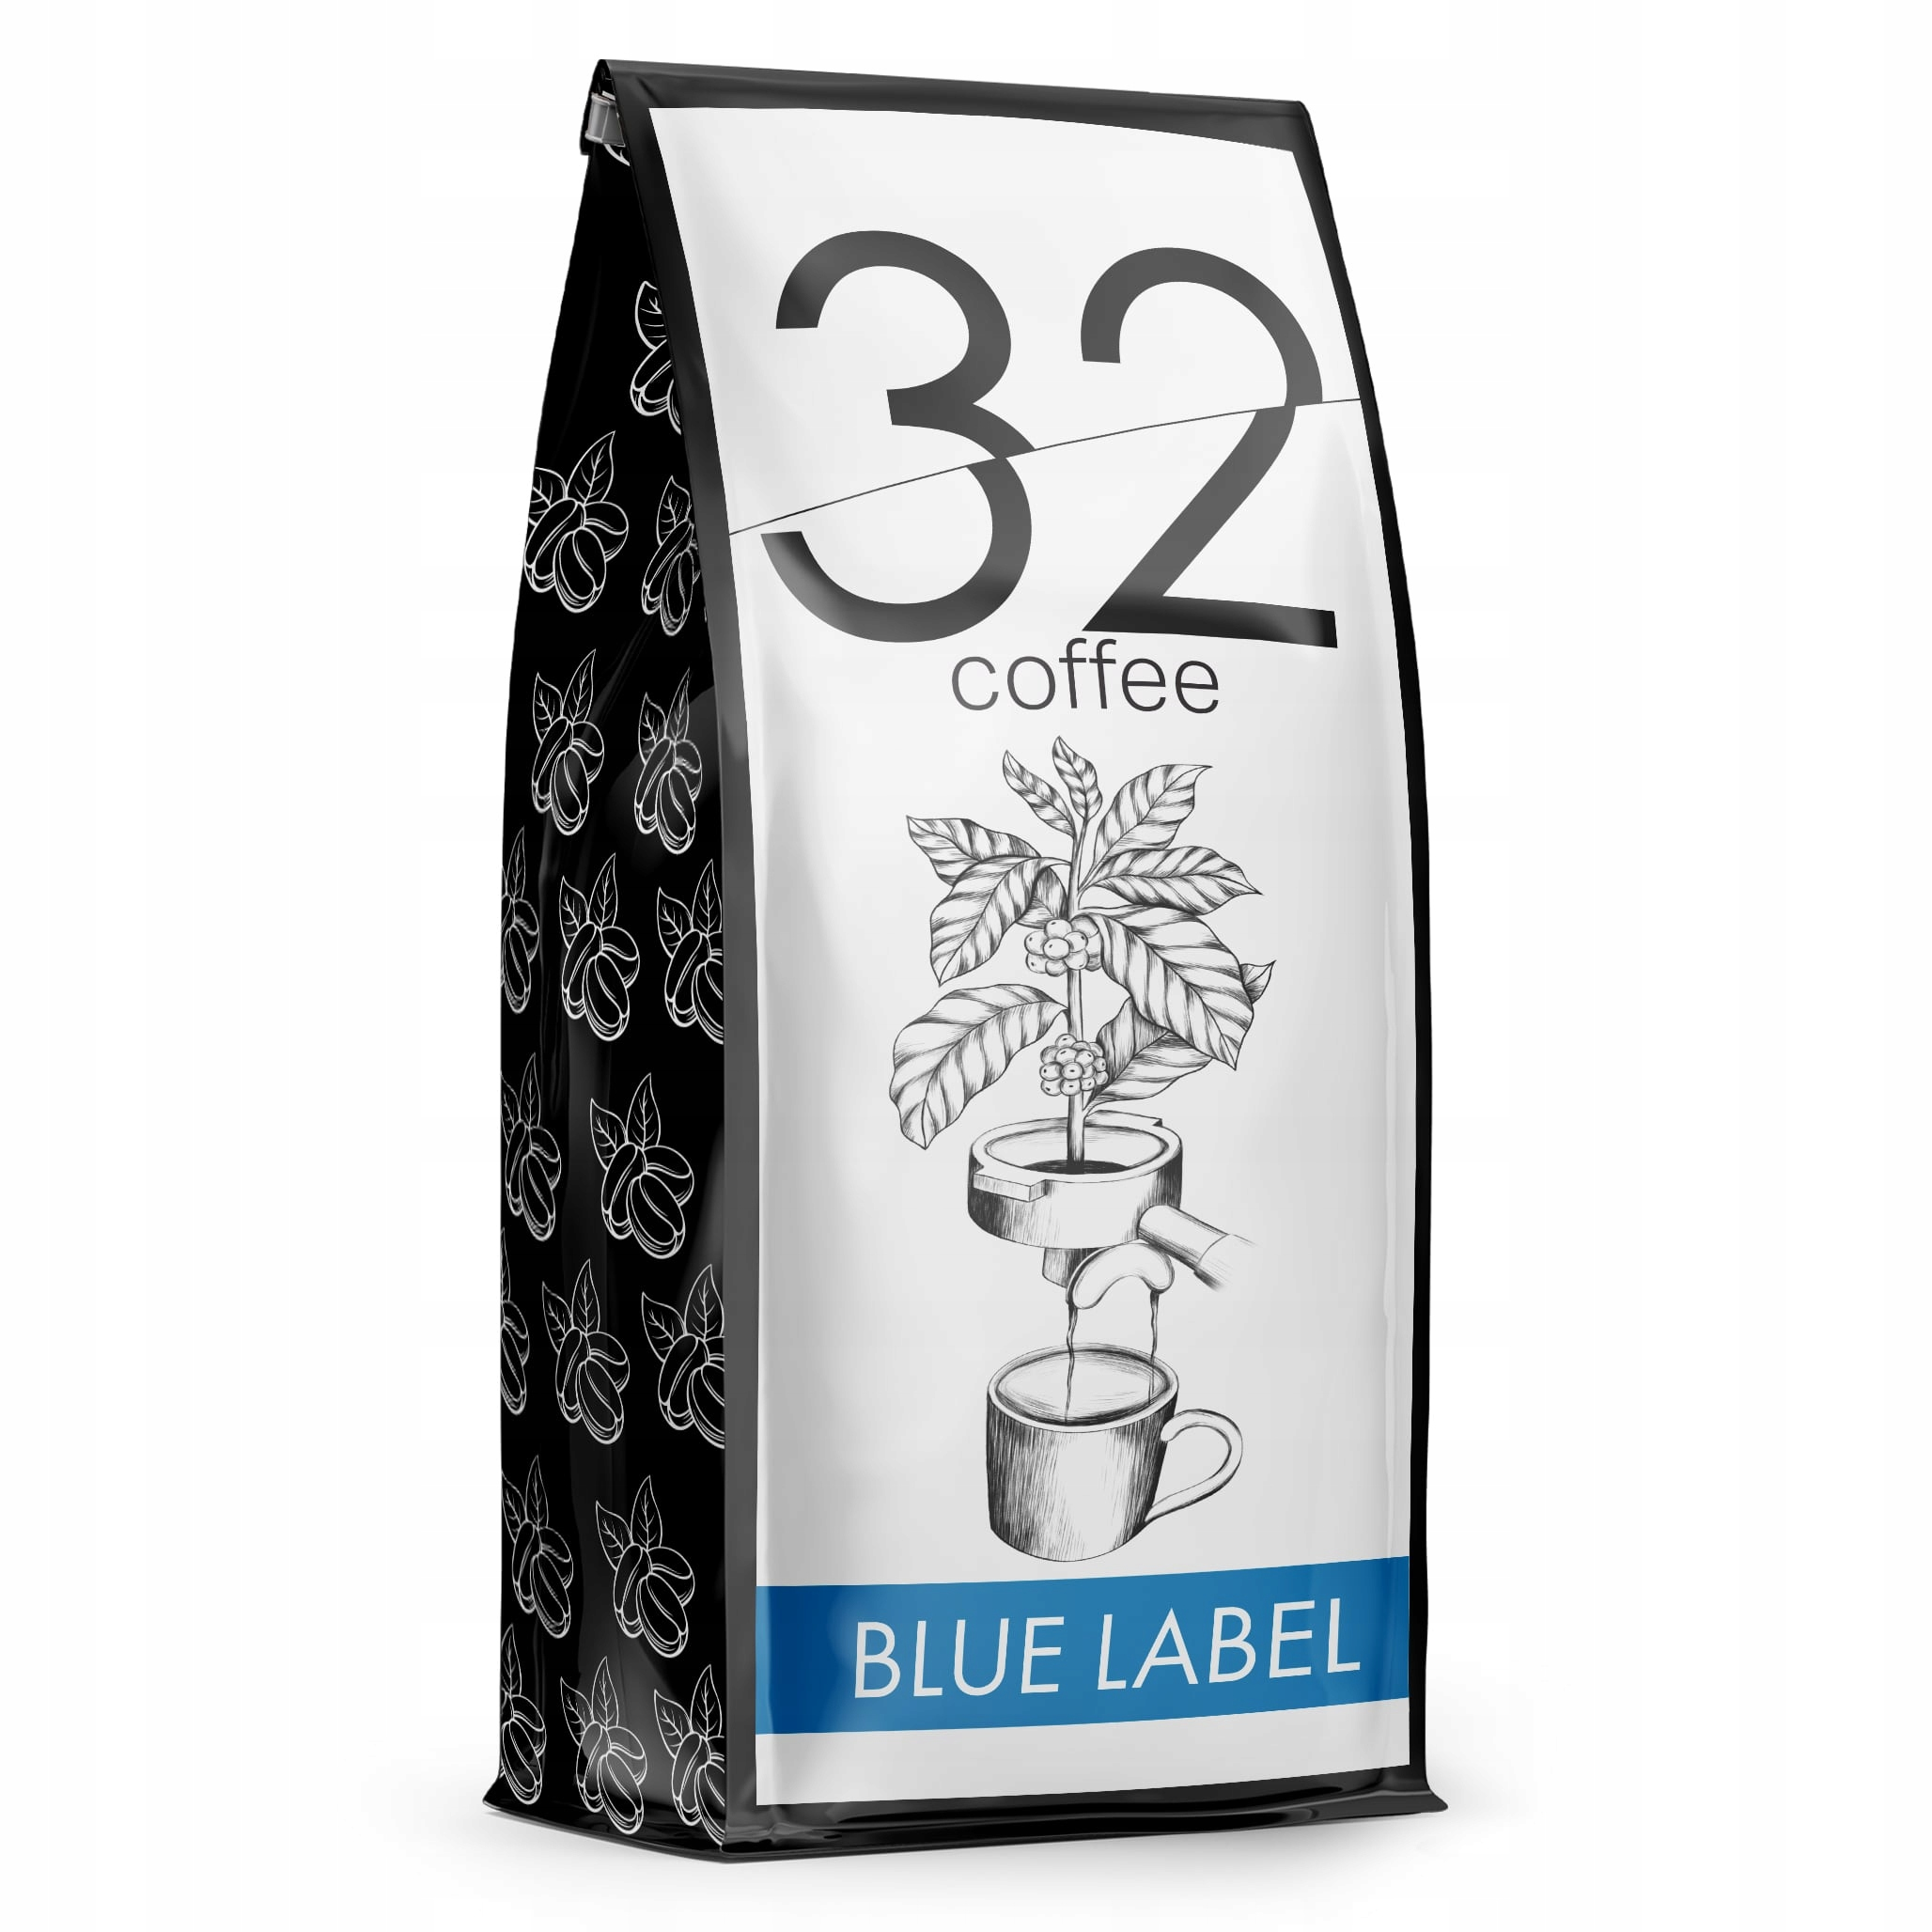 Кофе 32 Кофе BLUE LABEL 1кг Свежеобжаренный